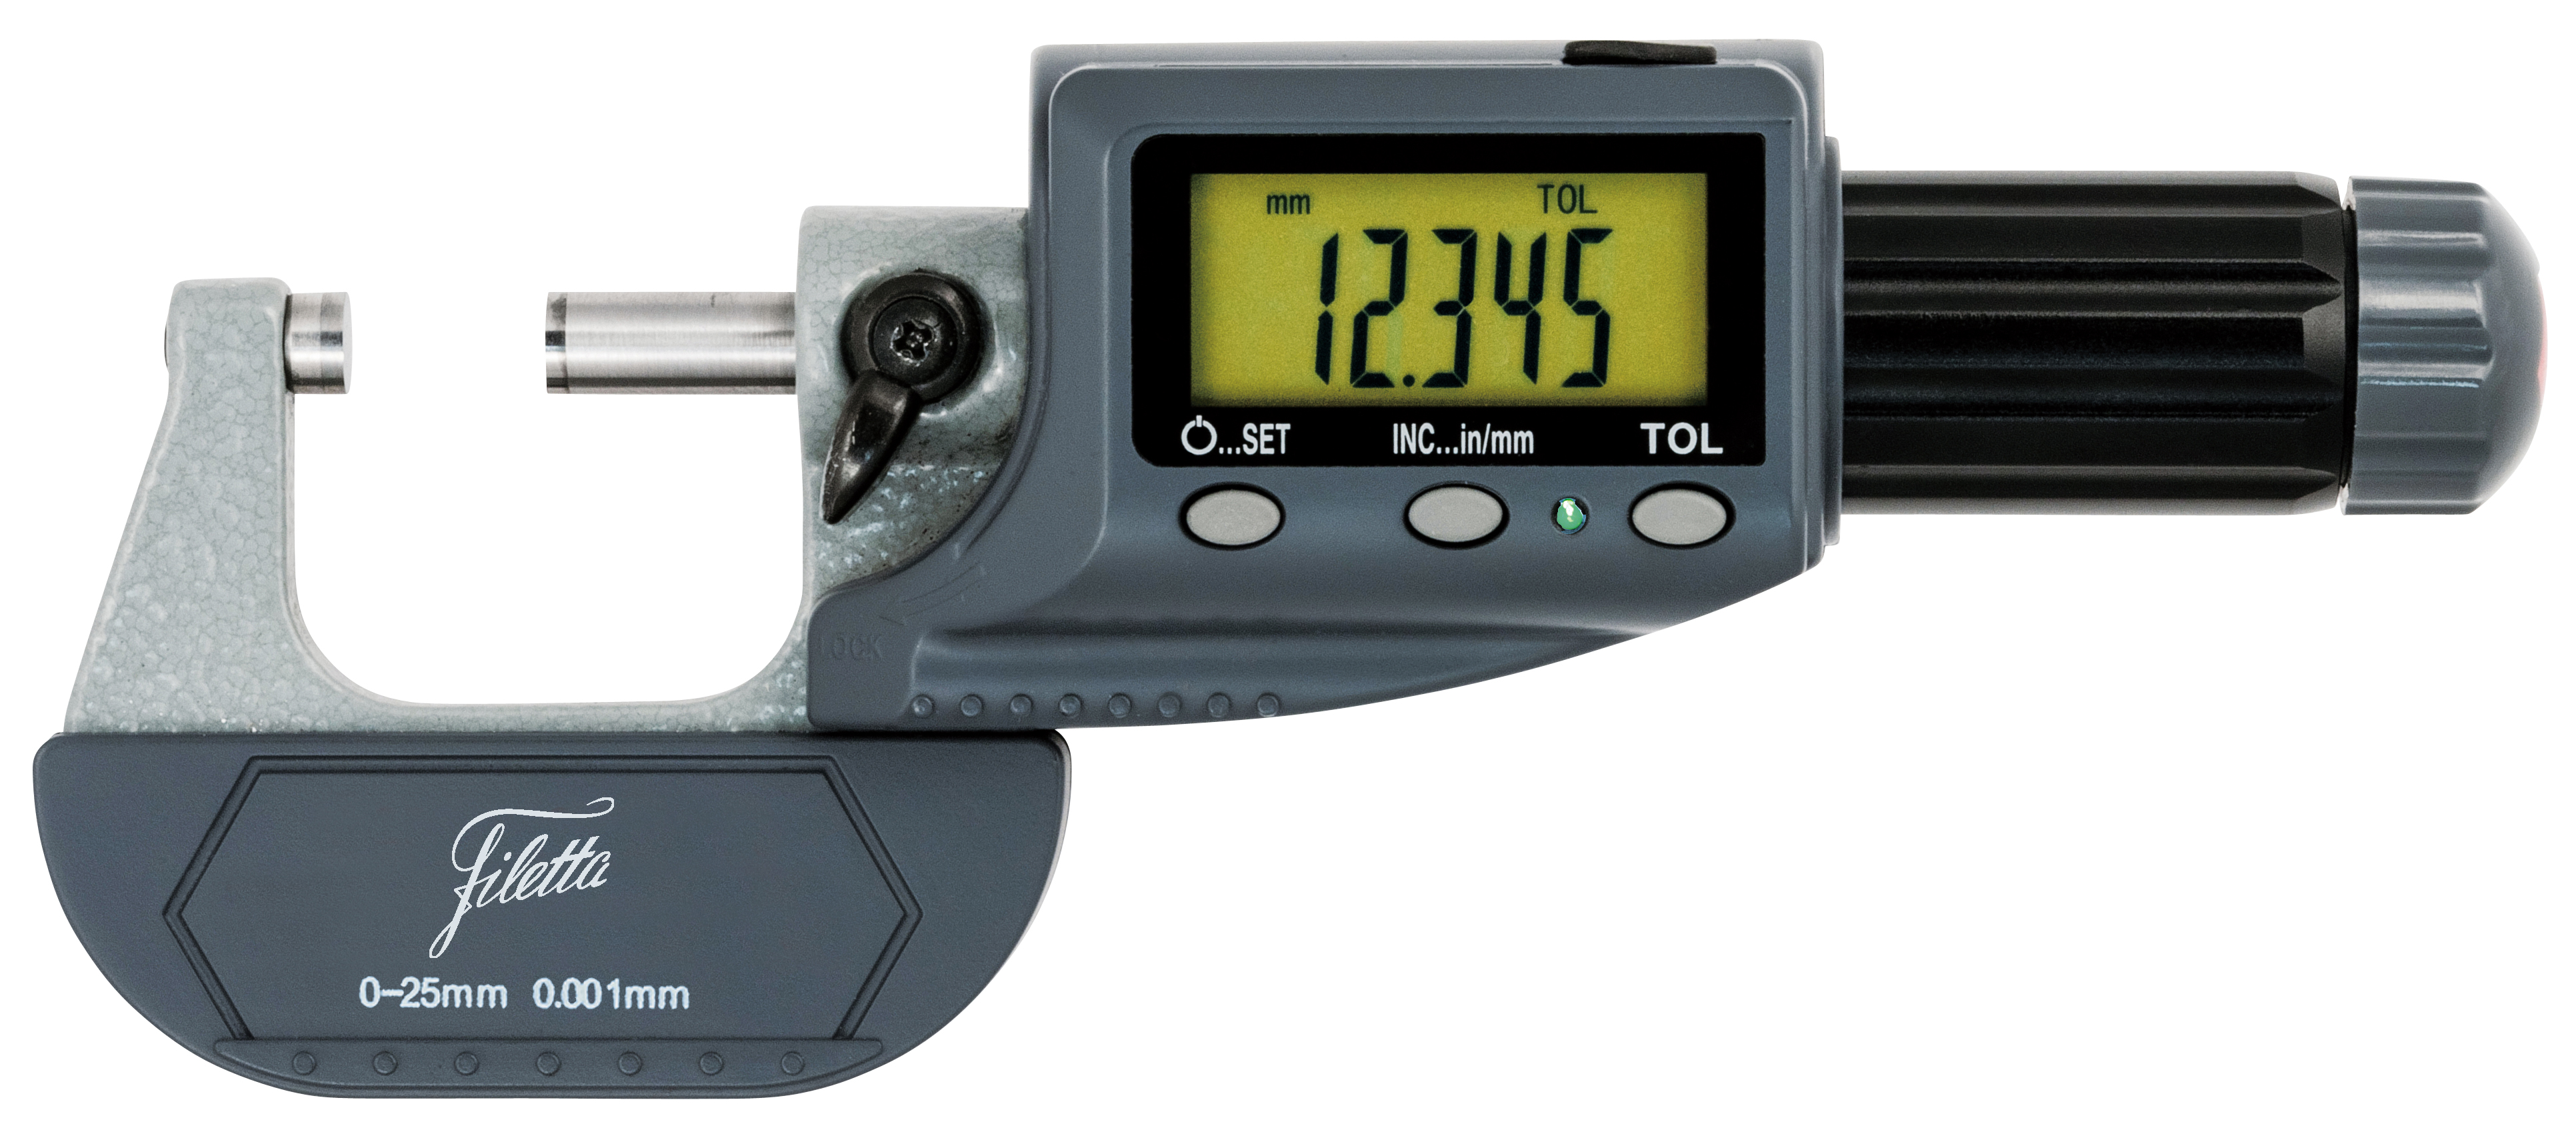 Digital outside micrometer with function to set tolerance limits, 50-75mm, IP 54